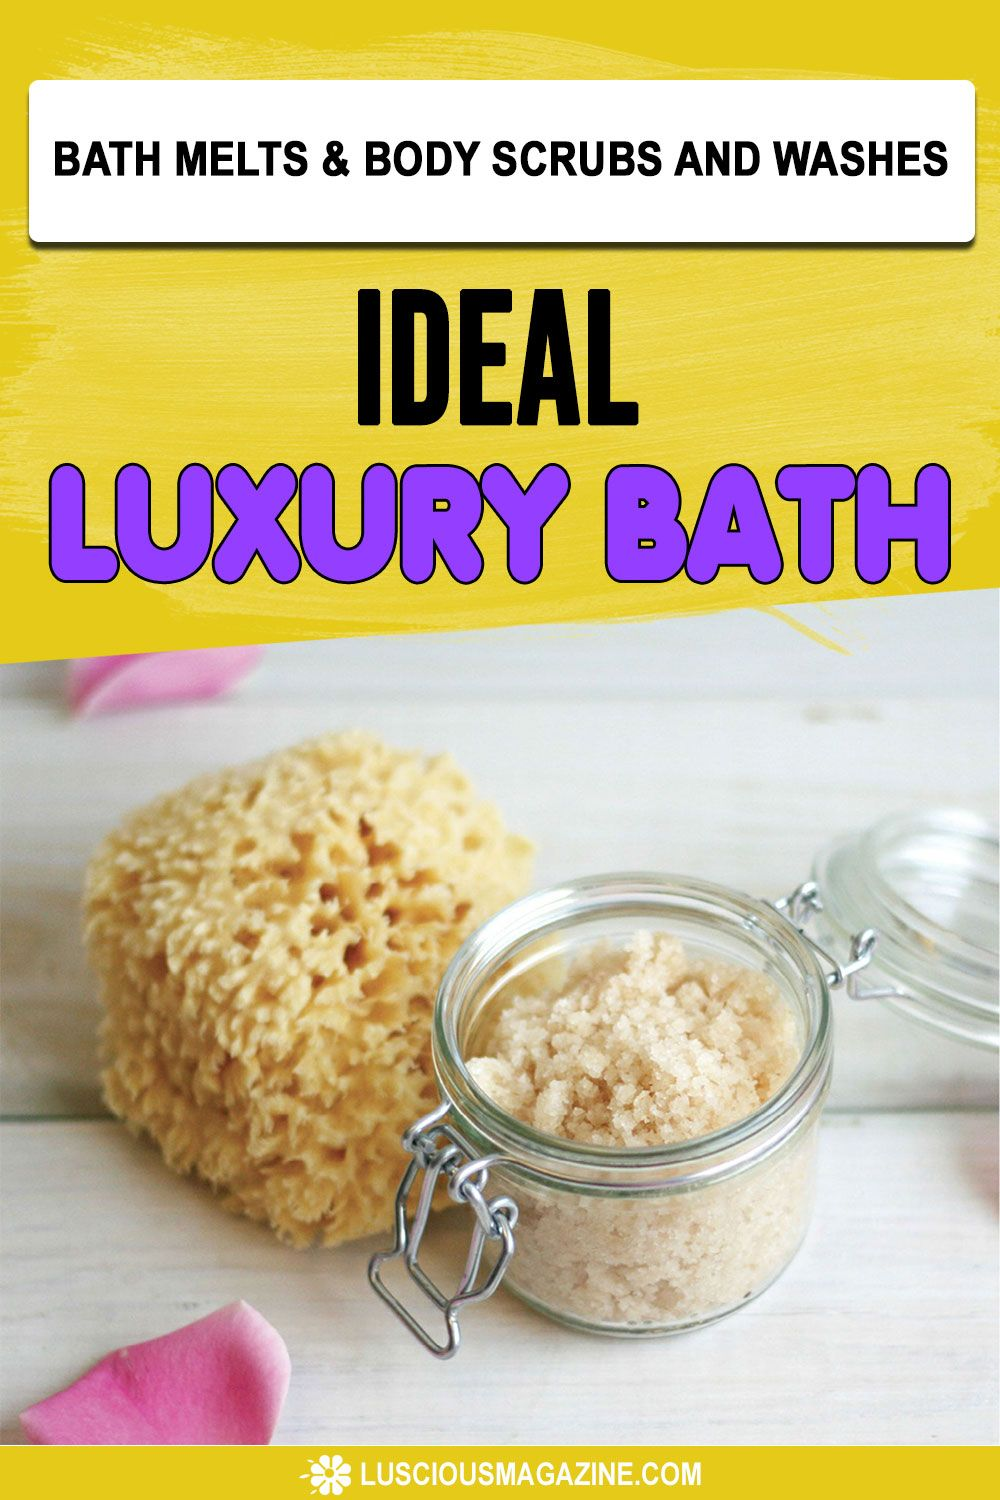 Covet your bath time as an opportunity to celebrate yourself as a fanciful creature of mood, whim, and decadence! This luxurious bath salt blend is rich in sea minerals, Epsom salts, skin-softening sweet almond oil, and skinconditioning oats... #homeremedies #homemadeproducts #homemade #herbs #flowers #garden #backyard #health #herbal #infusedoils #skincare #beauty #homeskincare #homebeauty #homeLuxuryBath #bathmelts #bodyscrubs #bodywashes #homebathmelts #homebodyscrubs #homebodywashes